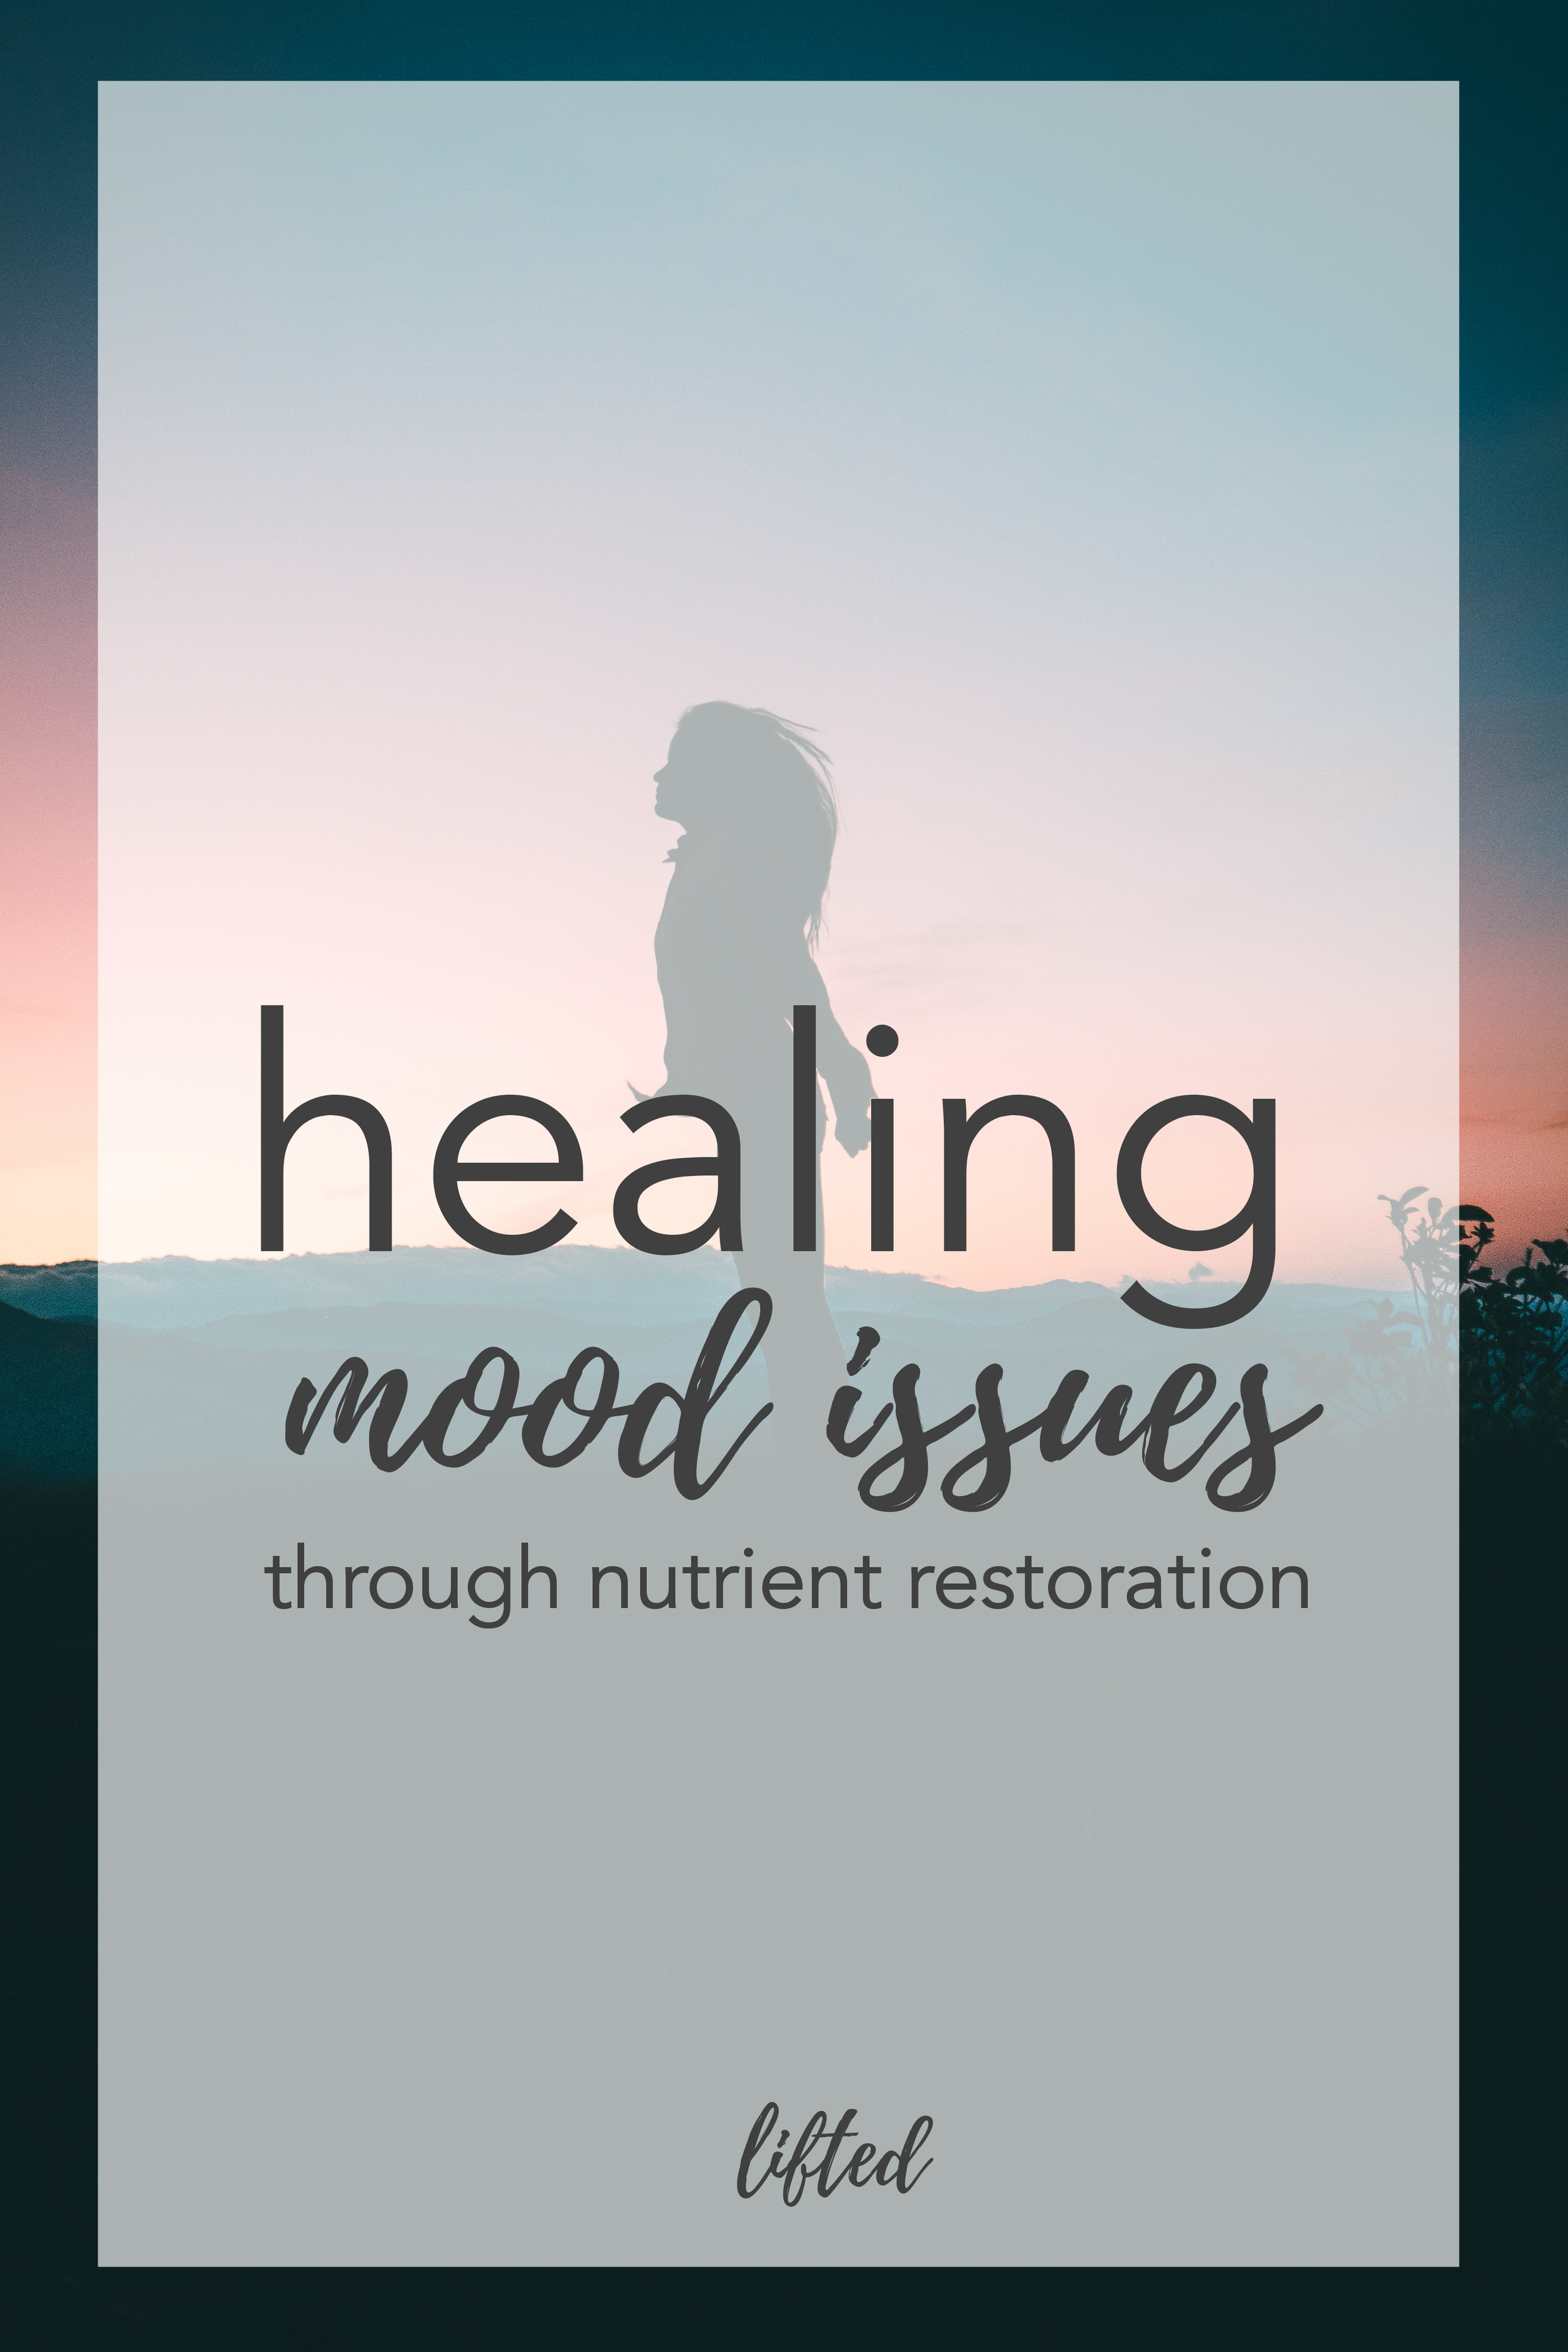 healing mood issues through nutrient restoration